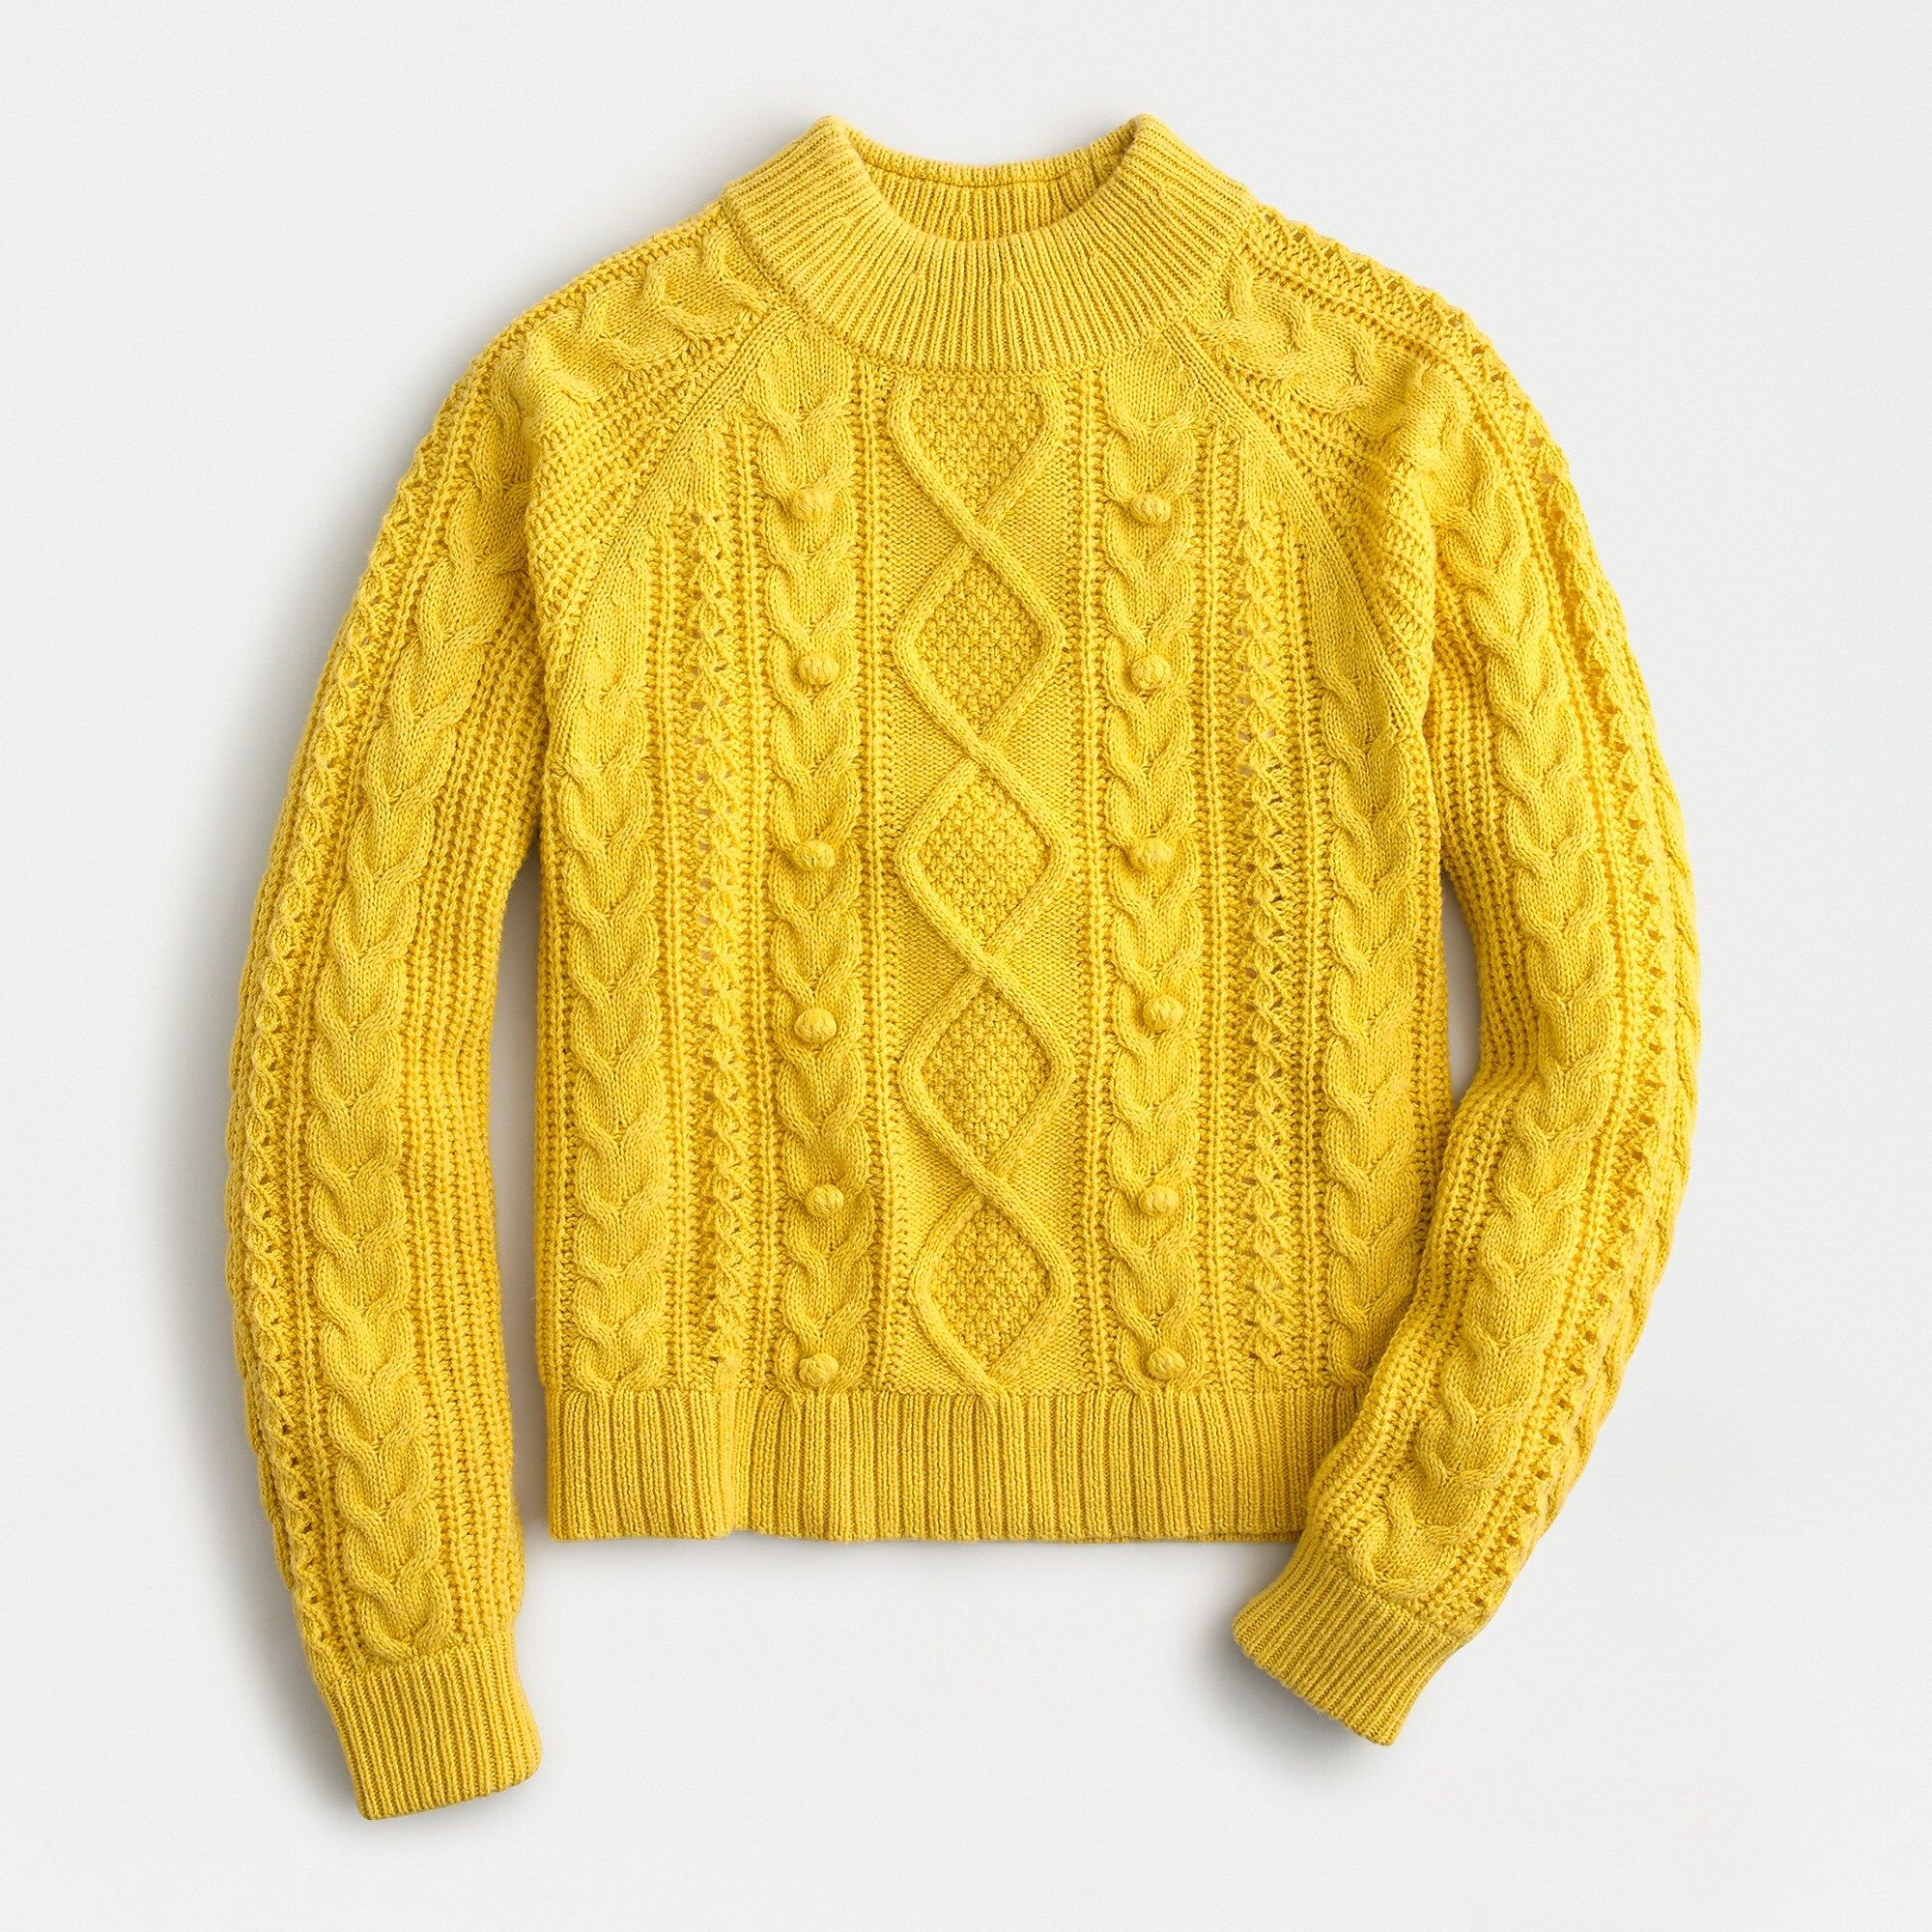 Shop J Crew For The Pom Pom Cable Knit Sweater For Women Find The Best Selection Of Women Clothing Available I Cable Knit Sweaters Knitted Sweaters Cable Knit